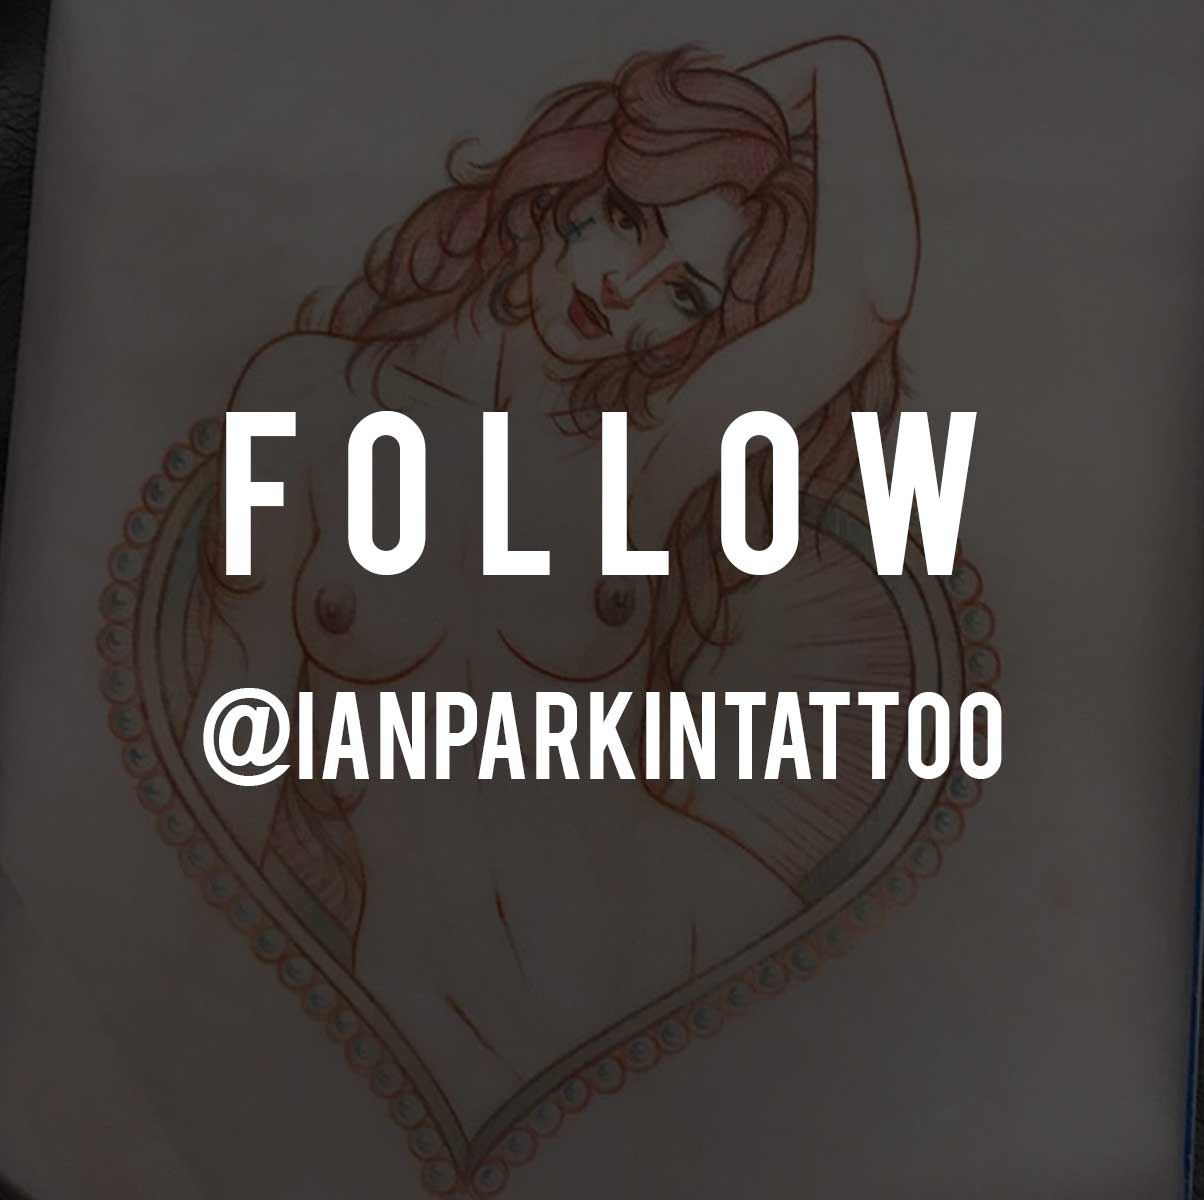 FOLLOW @IANPARKINTATTOO